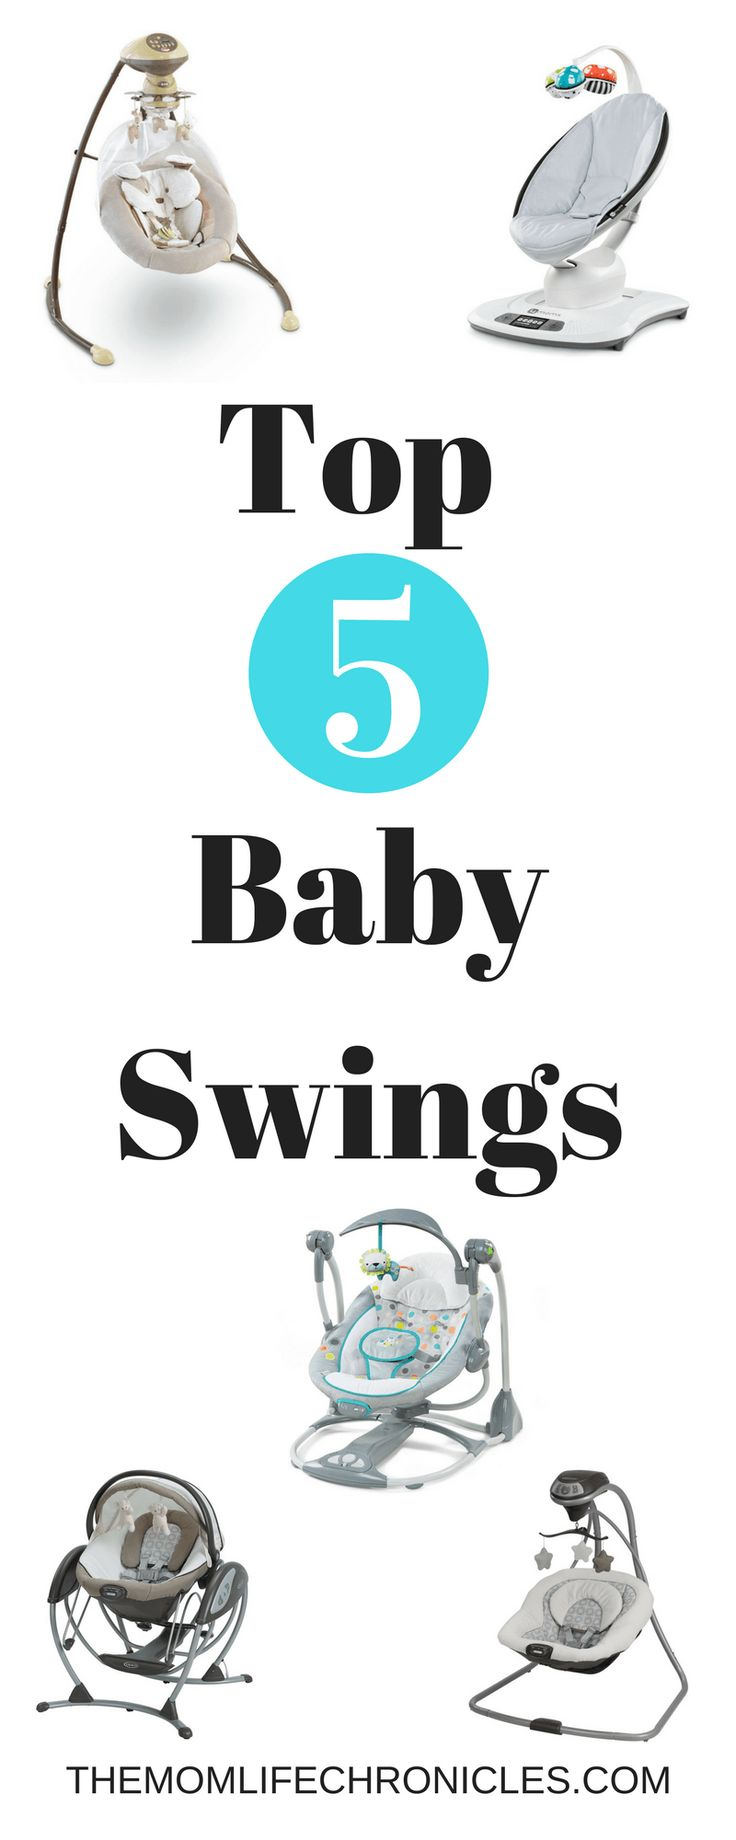 Best Baby Swings: Top 5 Baby Swings in 2017 | Baby| Baby Gear| Baby Equipment| Baby Swings|